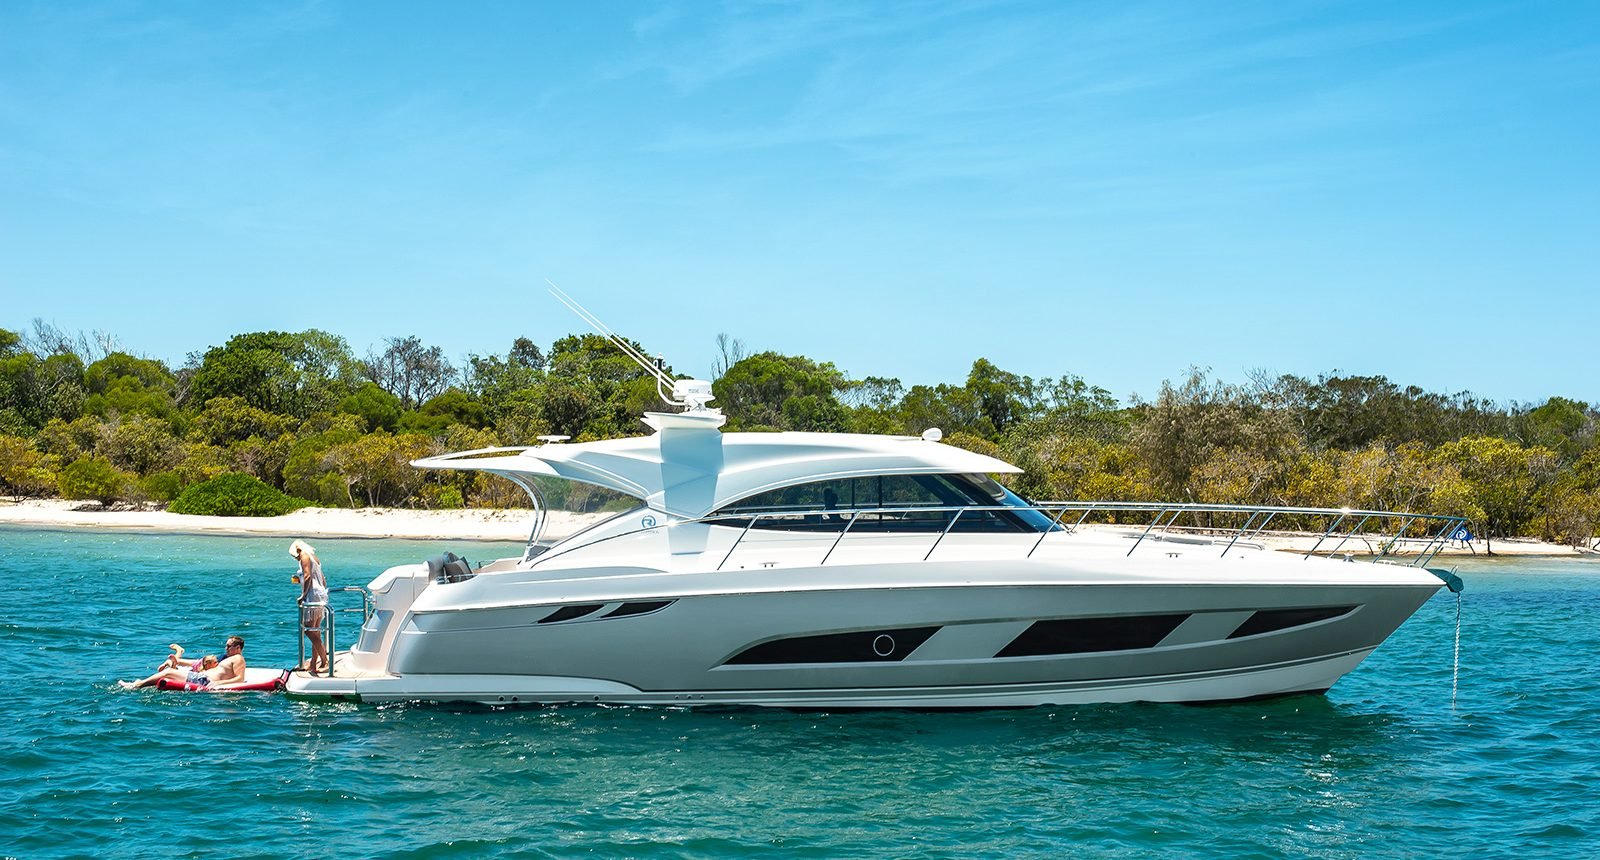 Riviera 4800 Sport Yacht - anchored